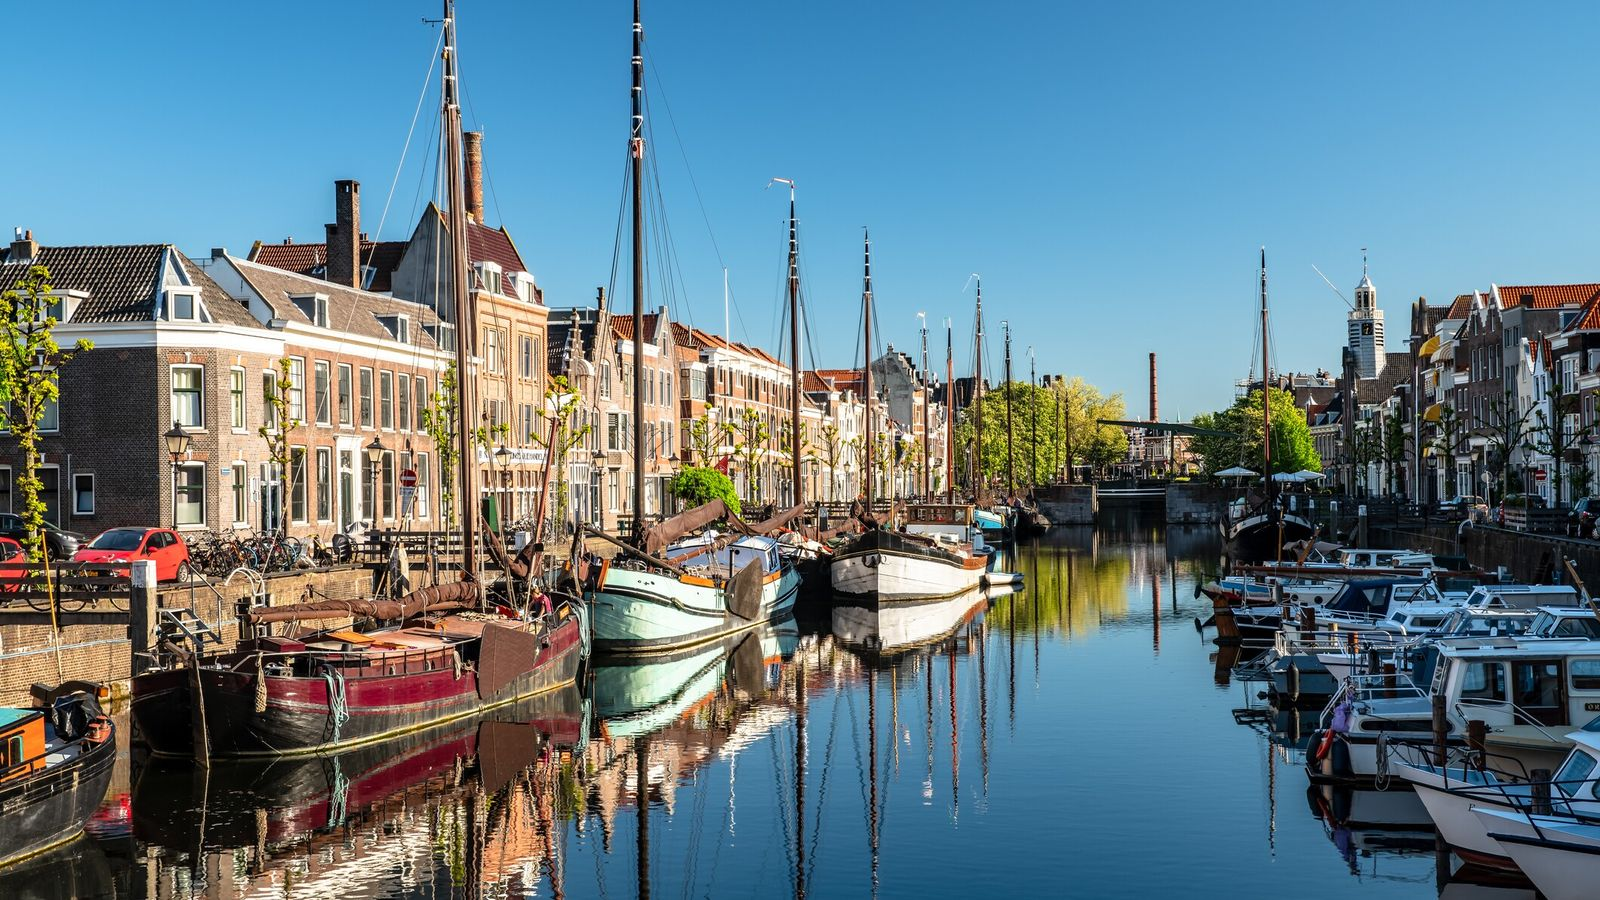 Delfshaven is a borough of Rotterdam on the right bank of river Nieuwe Maas, in South ...